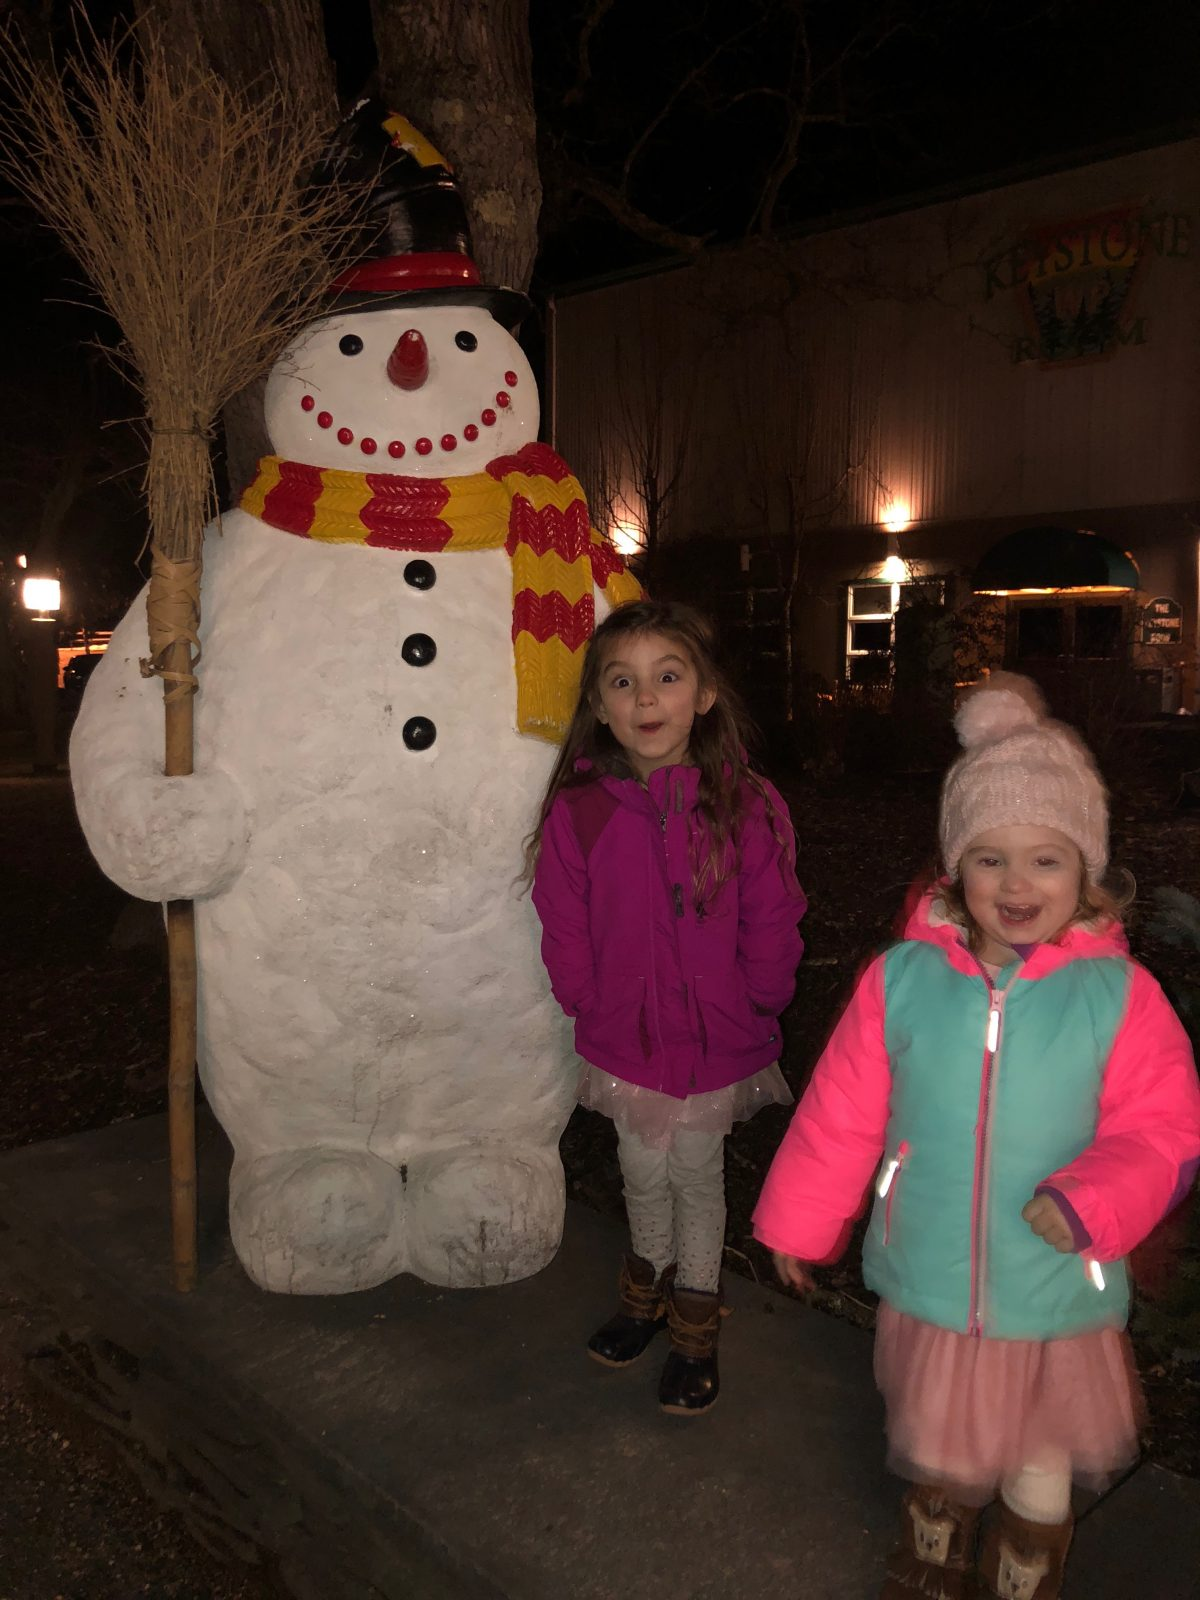 Little girls in winter coats standing by Frosty the Snowman statue at Woodloch Pines Resort in Poconos Mountains PA